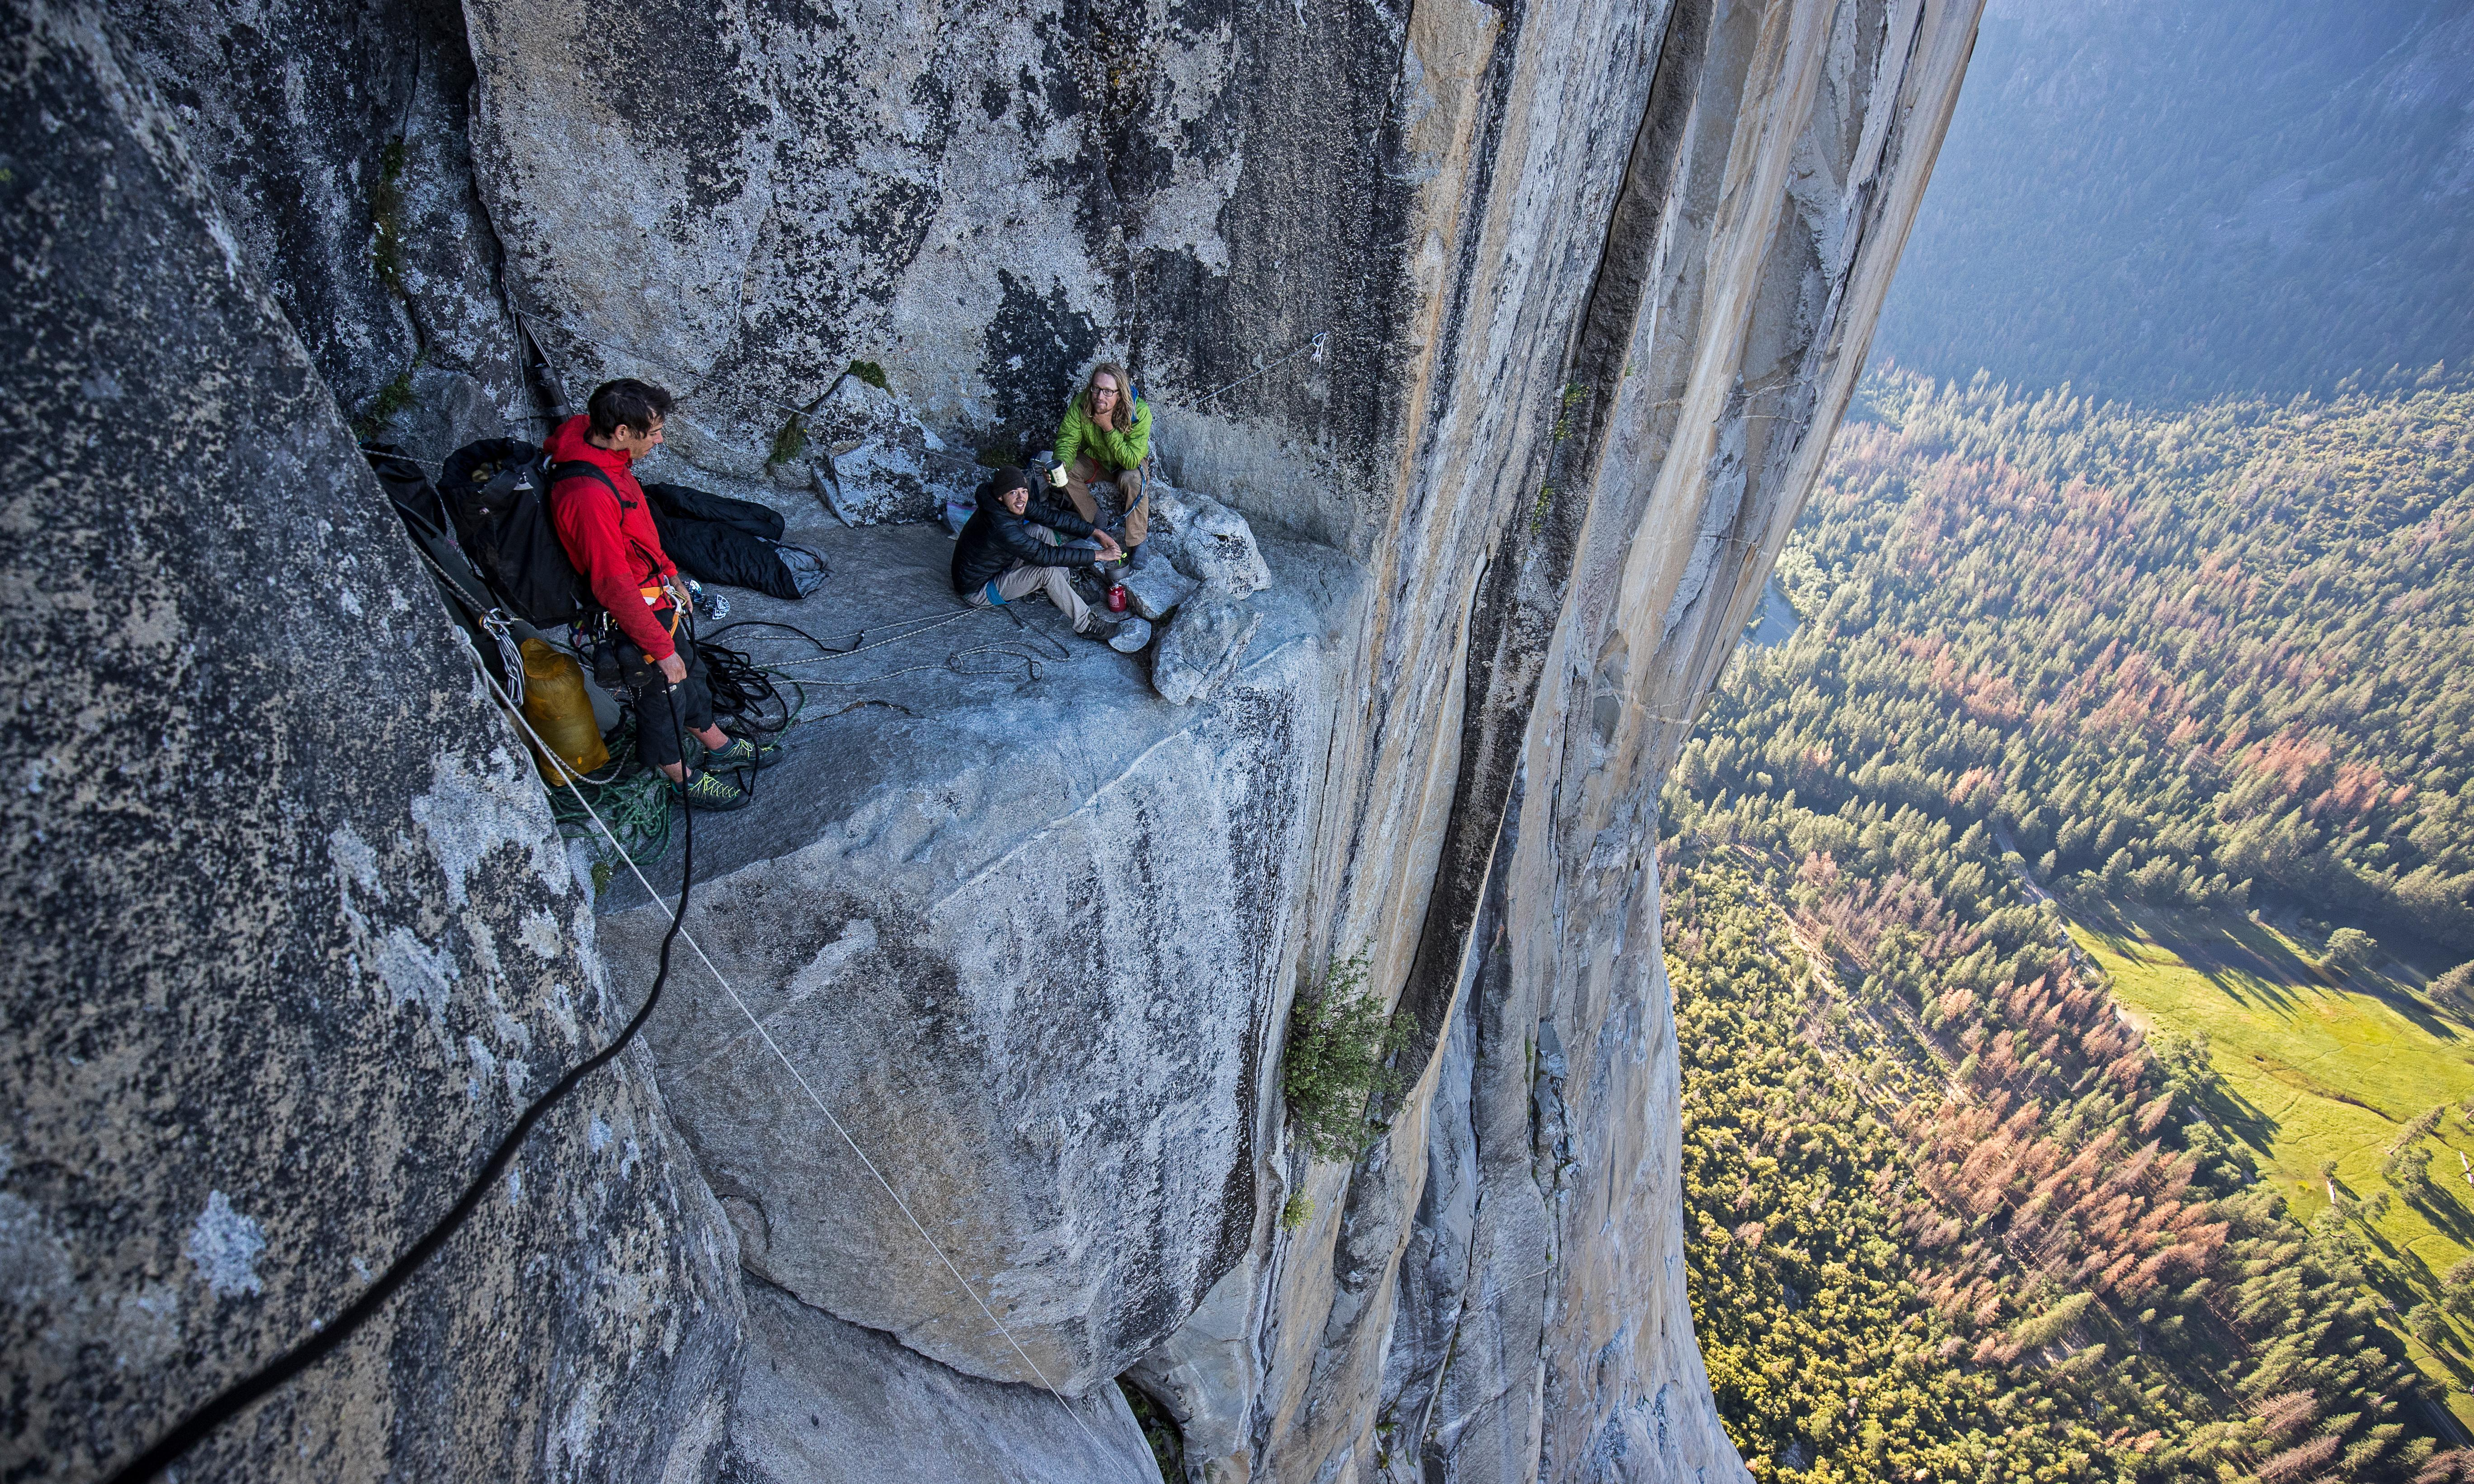 No ropes attached: behind two heart-racing free climbing documentaries